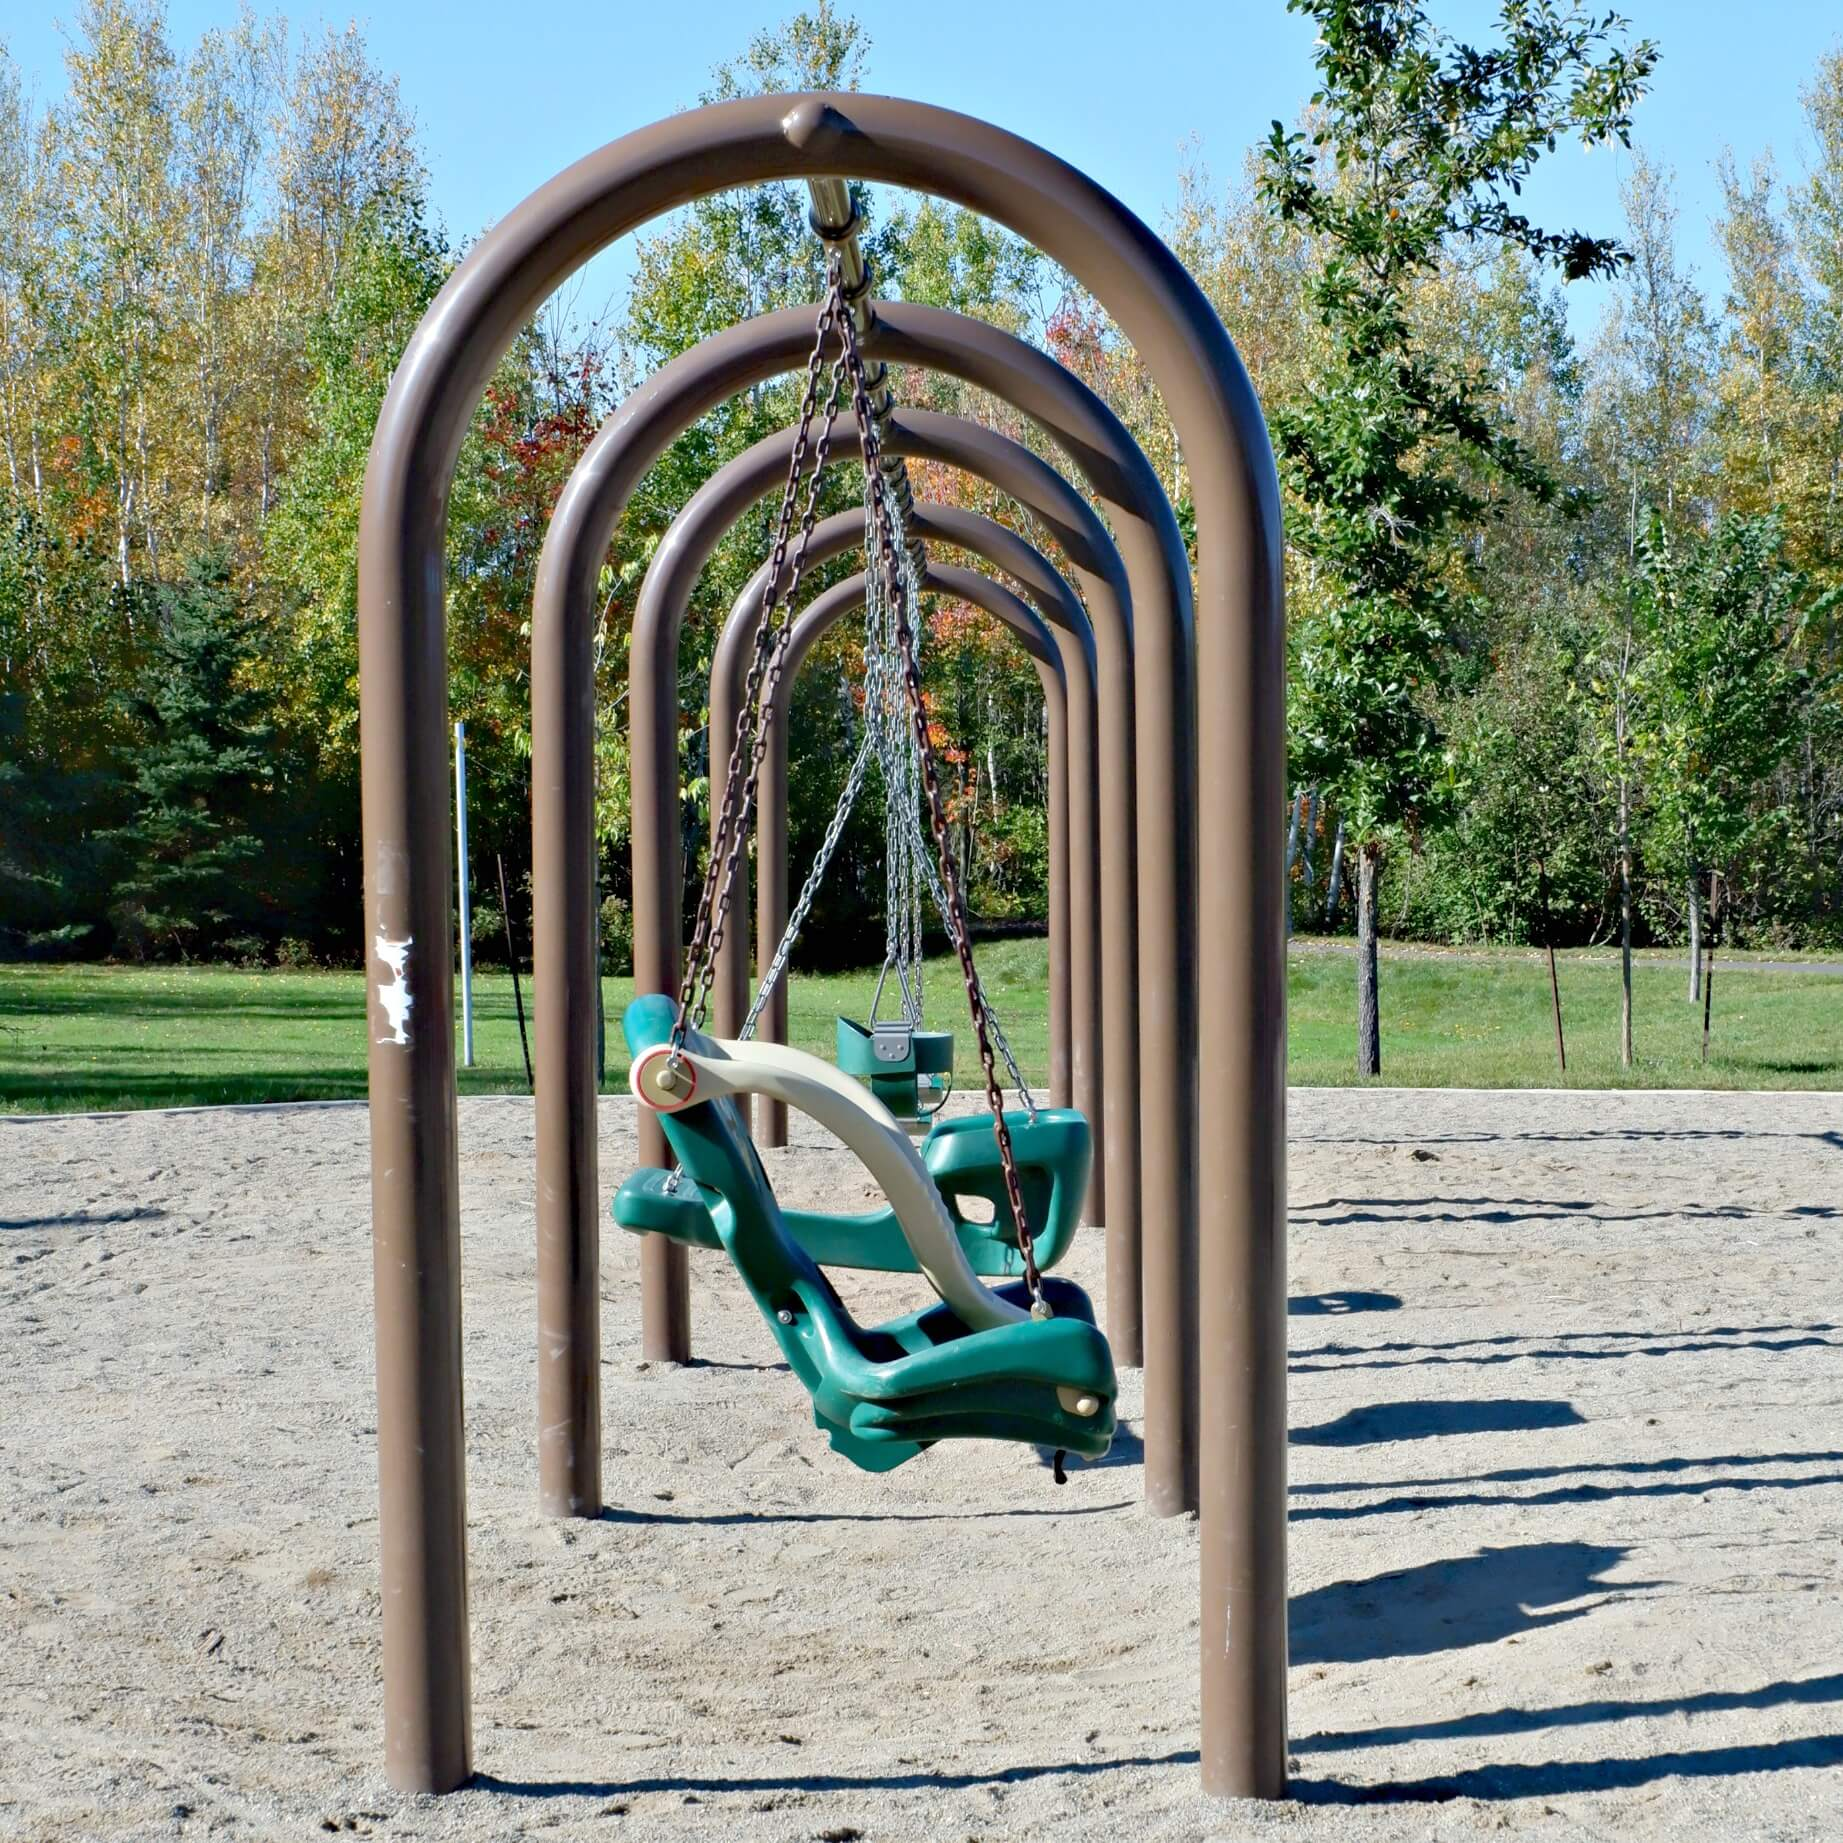 maplehurst park playground moncton riverview dieppe best play new brunswick swings